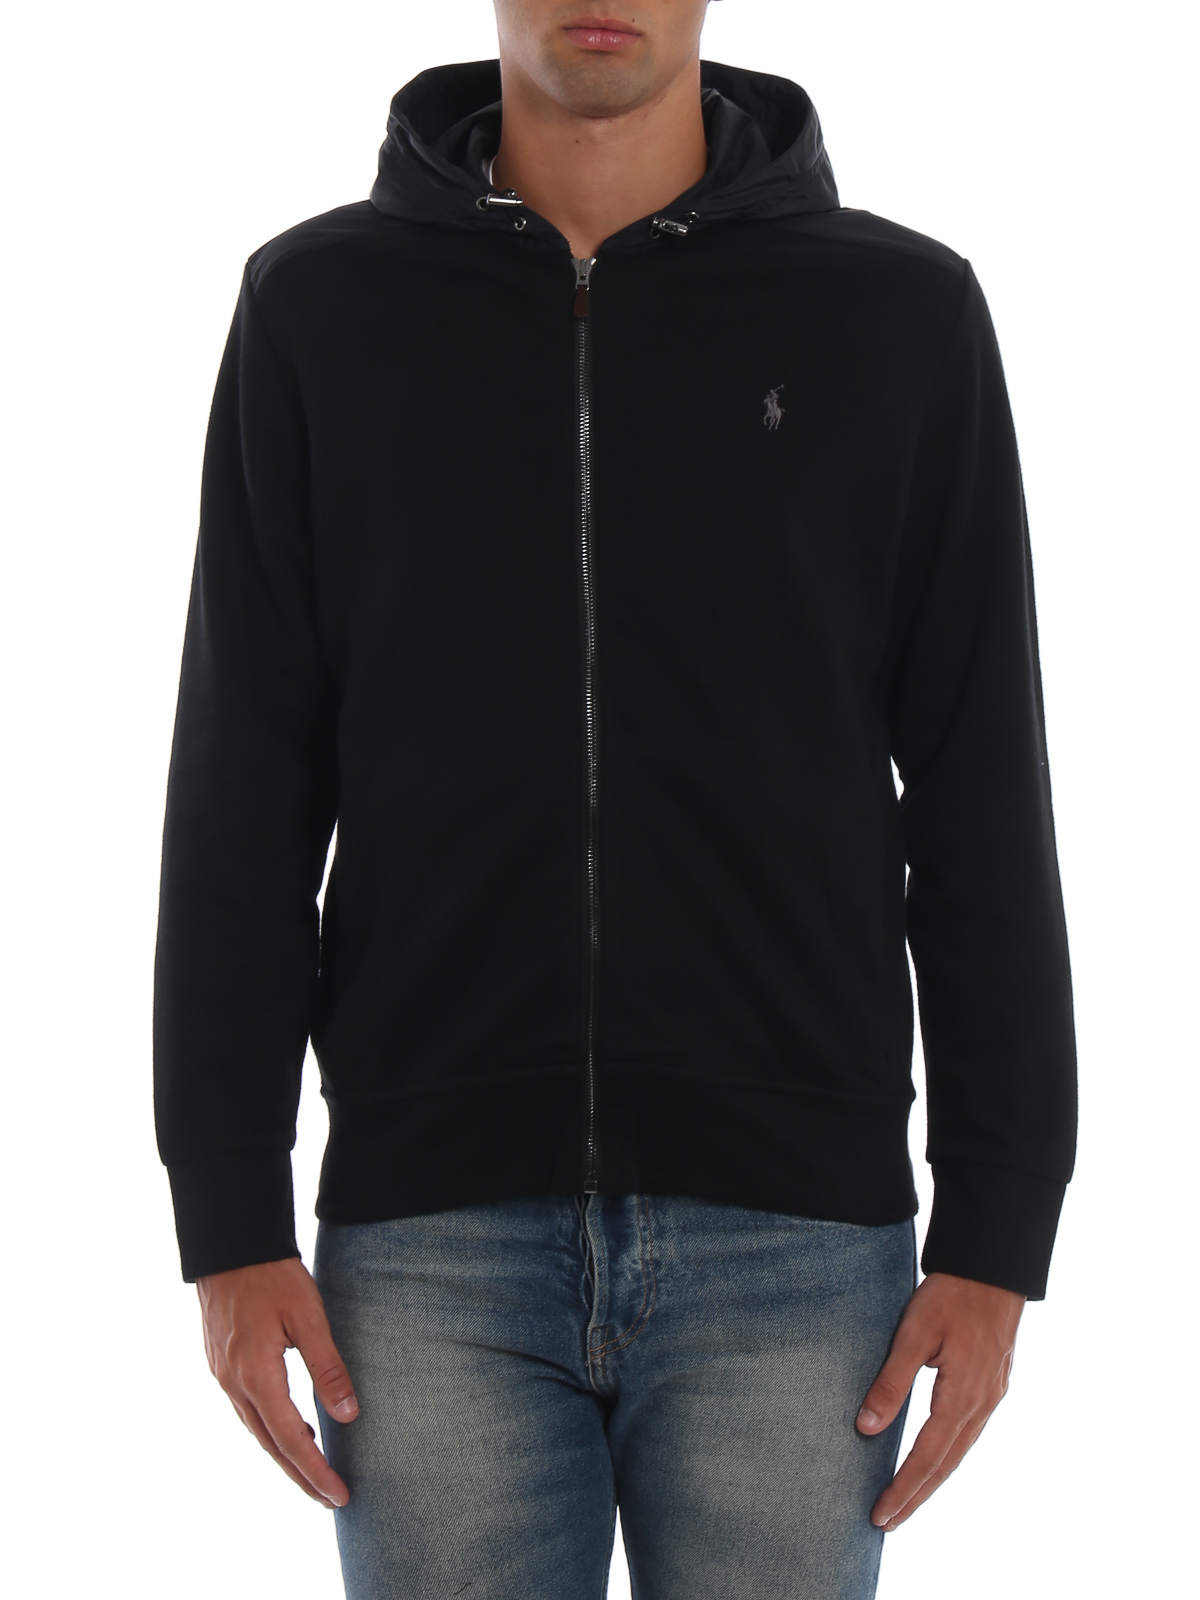 finest selection 38b6d 2f66c Polo Ralph Lauren - Sweatshirt - Schwarz - Sweatshirts und ...